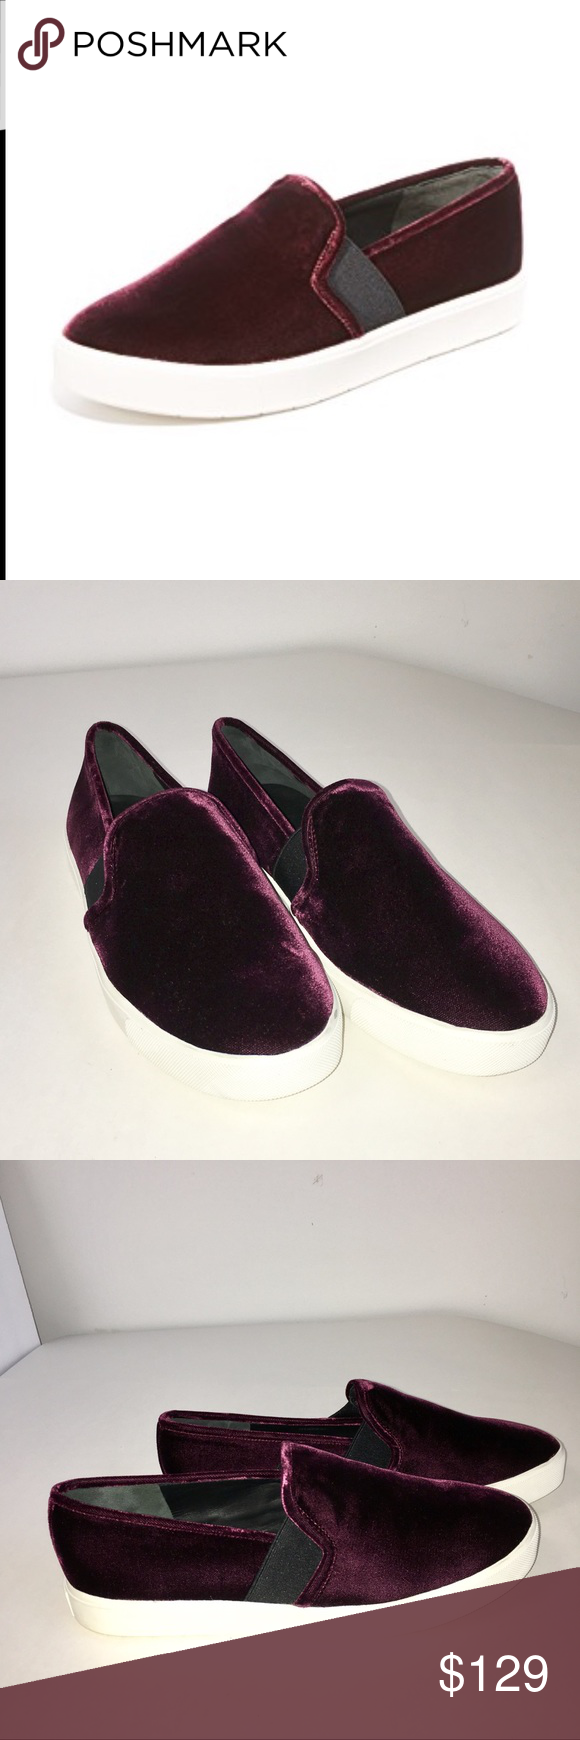 a305162728ae Vince Blair - 12 Velvet Skate Sneaker Oxblood A great pair of Vince  Blair-12 Velvet Skate Sneakers in Oxblood. These are oh so stylish and are  great to add ...